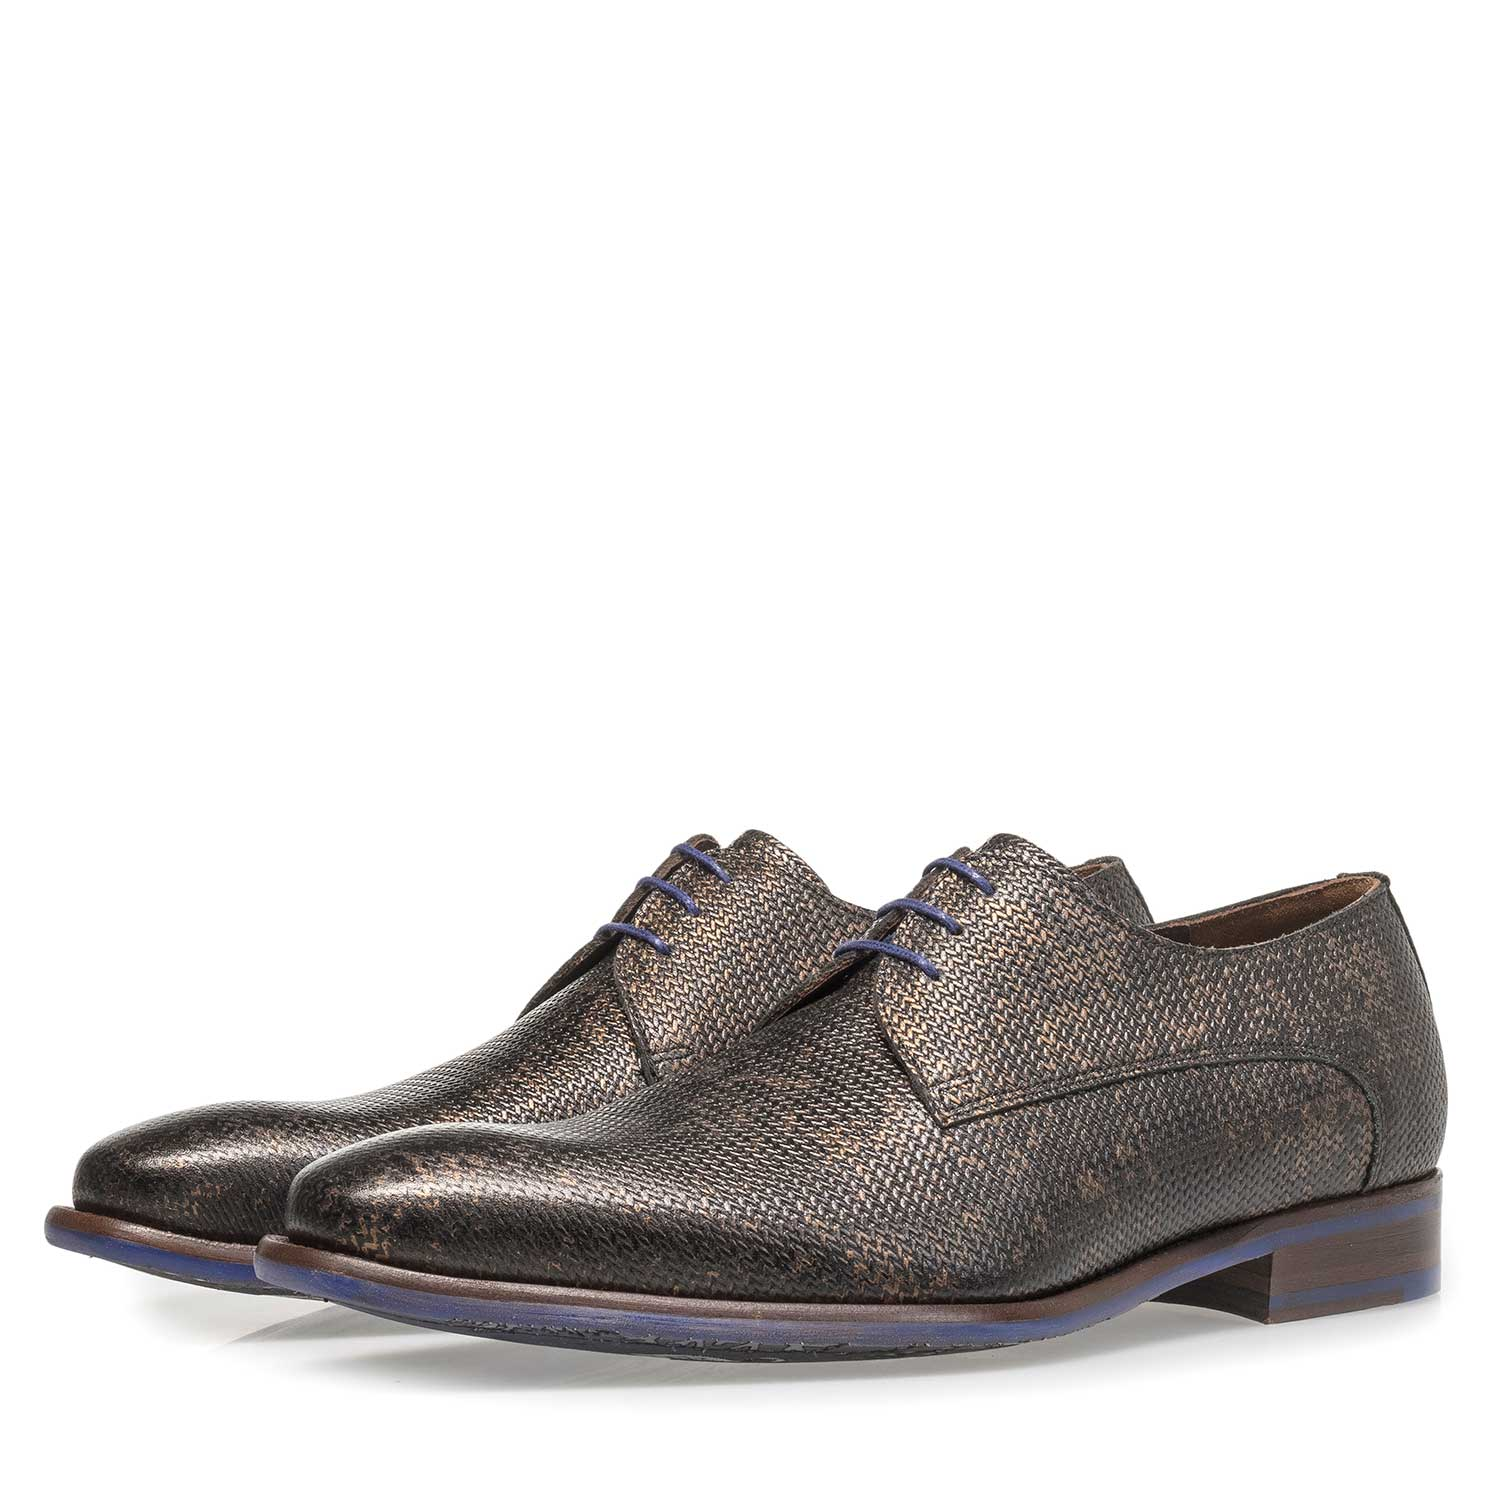 18159/02 - Leather lace shoe with bronze-coloured metallic print